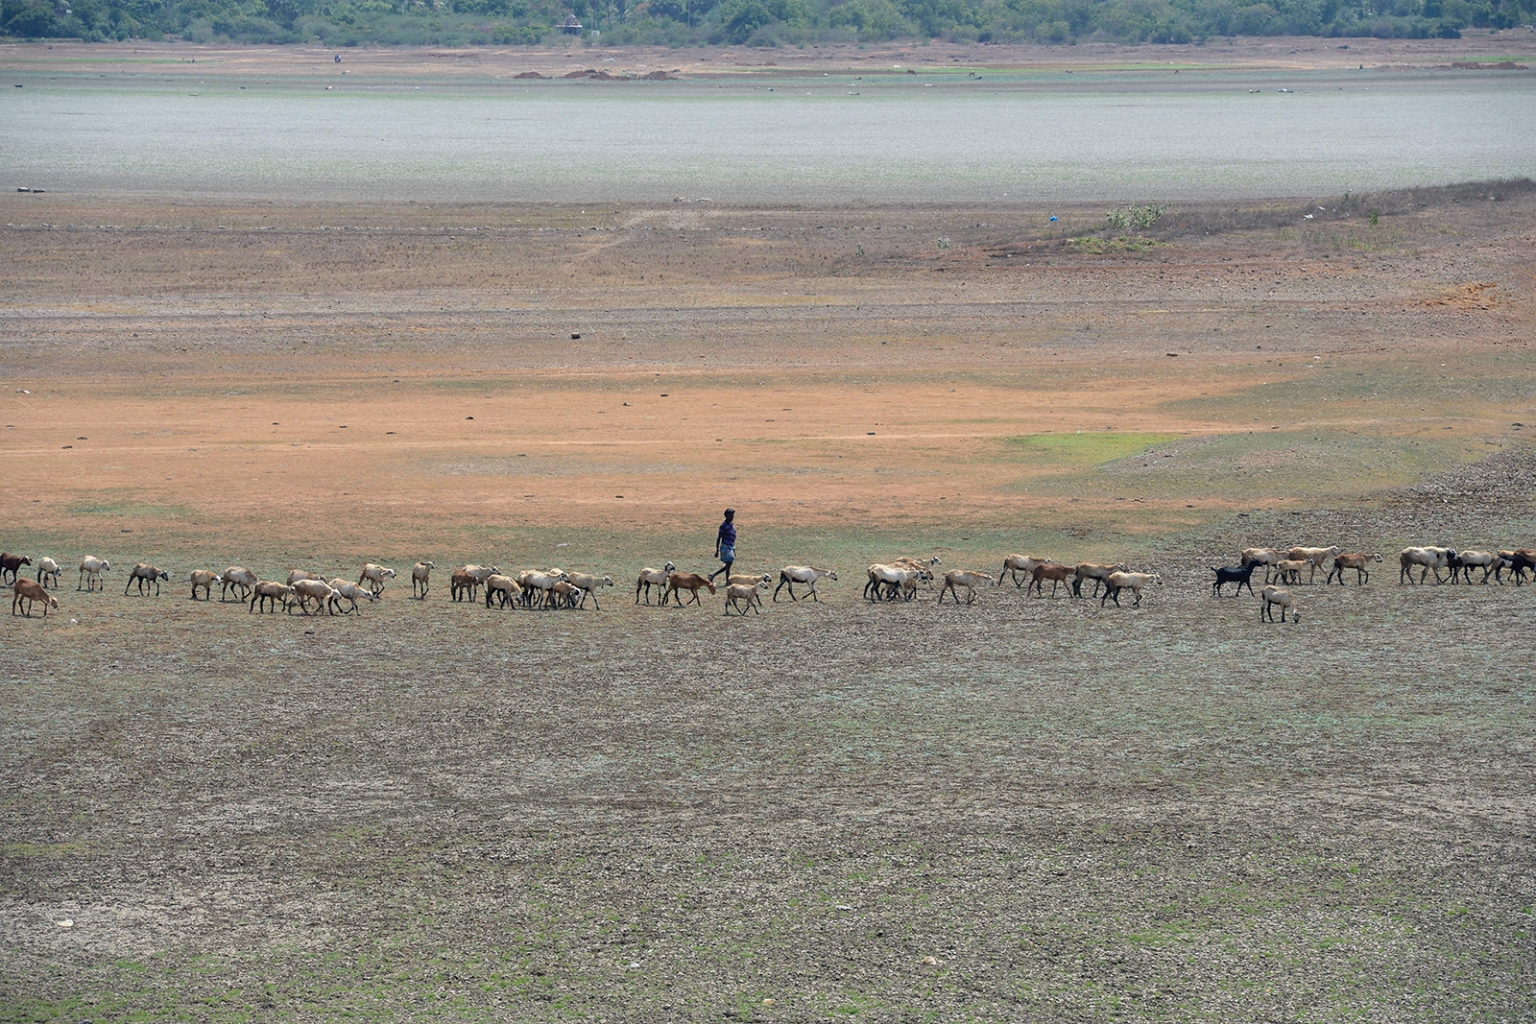 An Indian shepherd walks with lifestock on the dried Puzhal reservoir on the outskirts of Chennai on June 14. Water levels in the four main reservoirs in Chennai have fallen to one of its lowest levels in 70 years. ARUN SANKAR/AFP/Getty Images